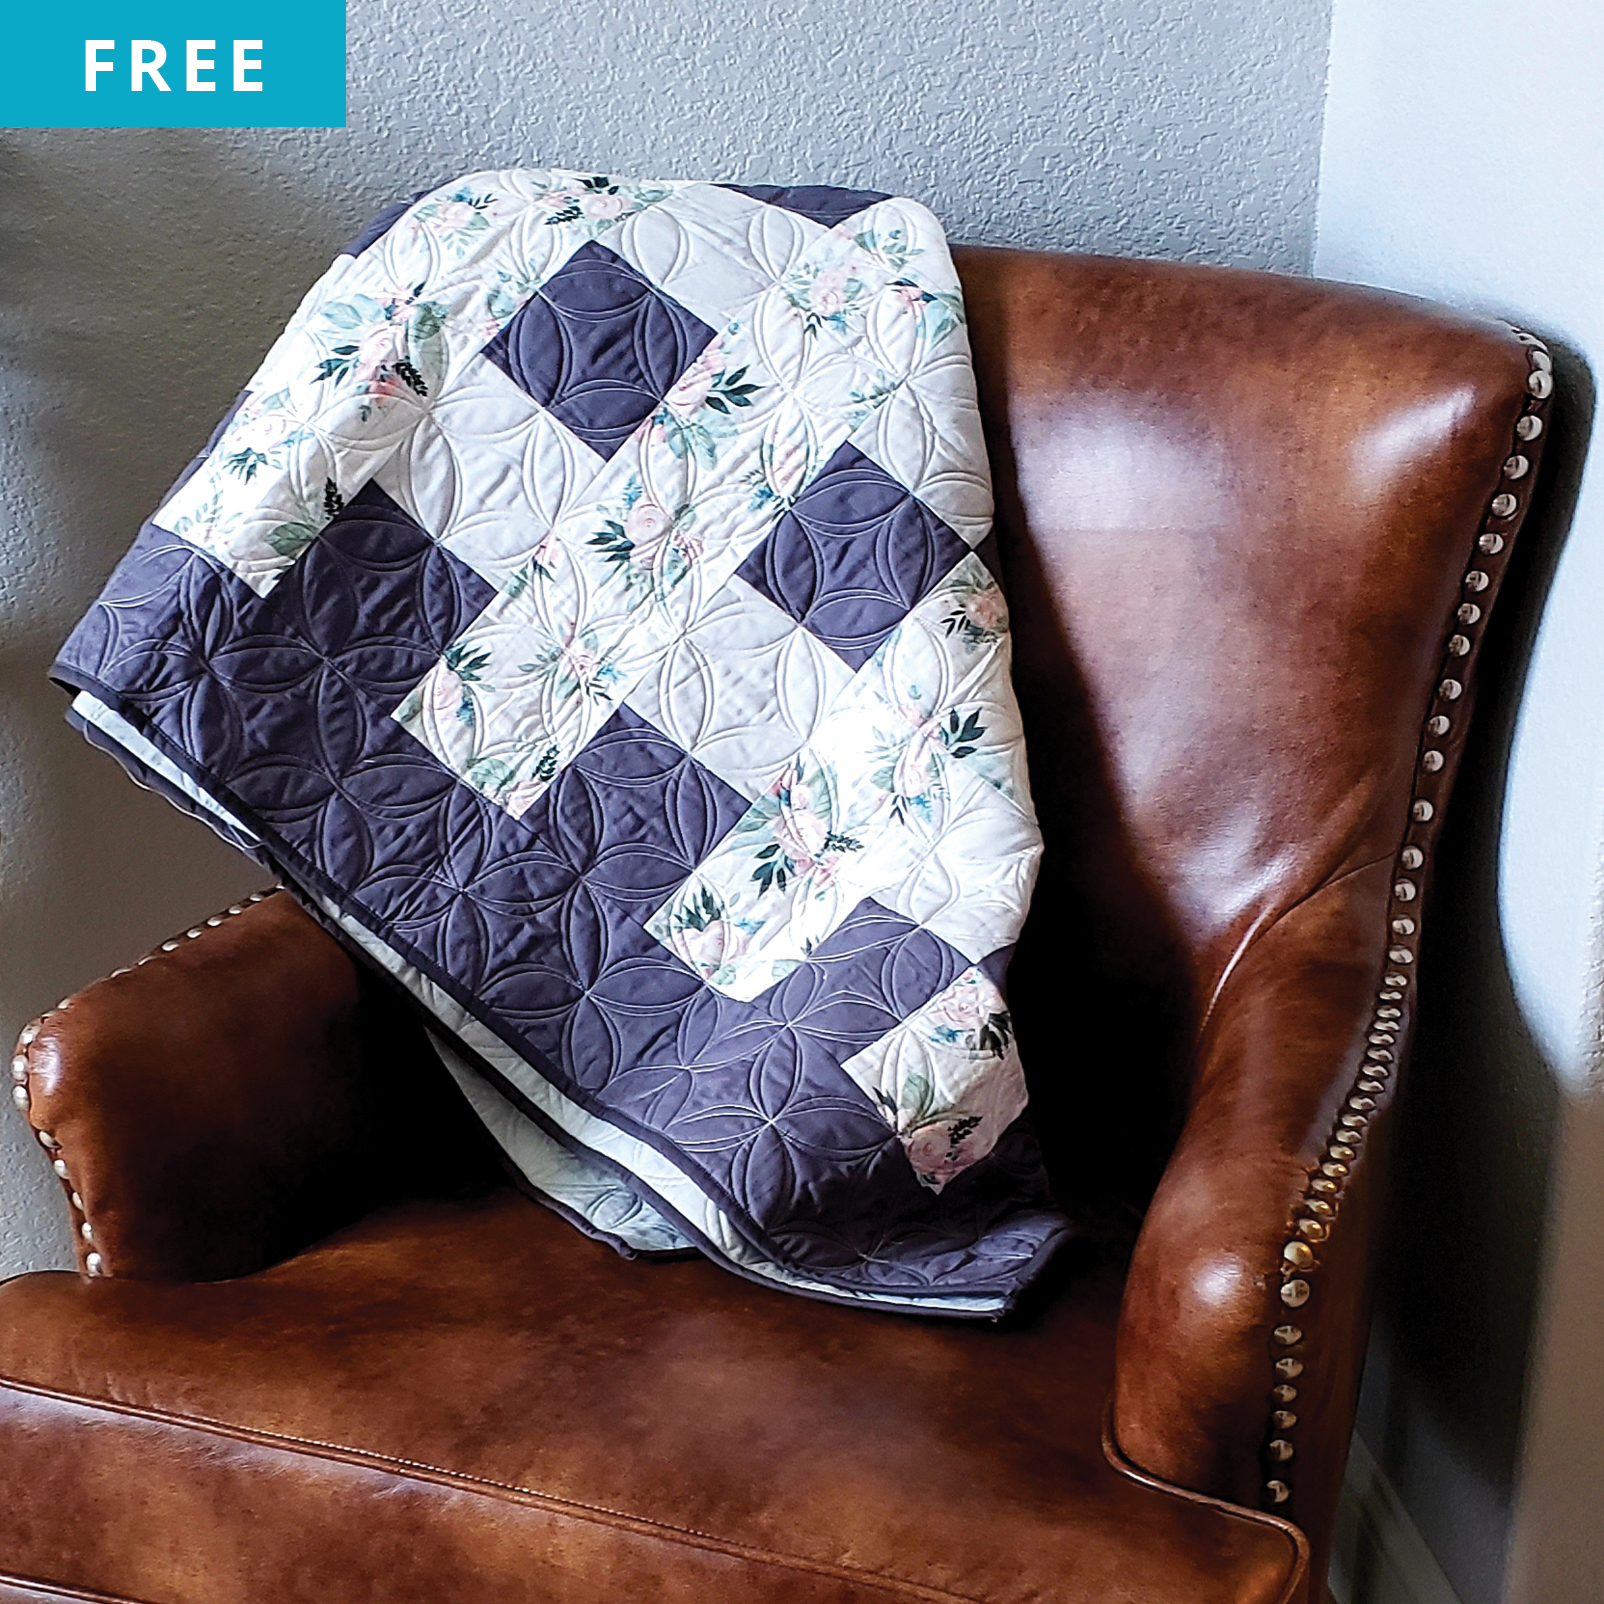 Free Quilt Pattern - Overlapping Lines Quilt